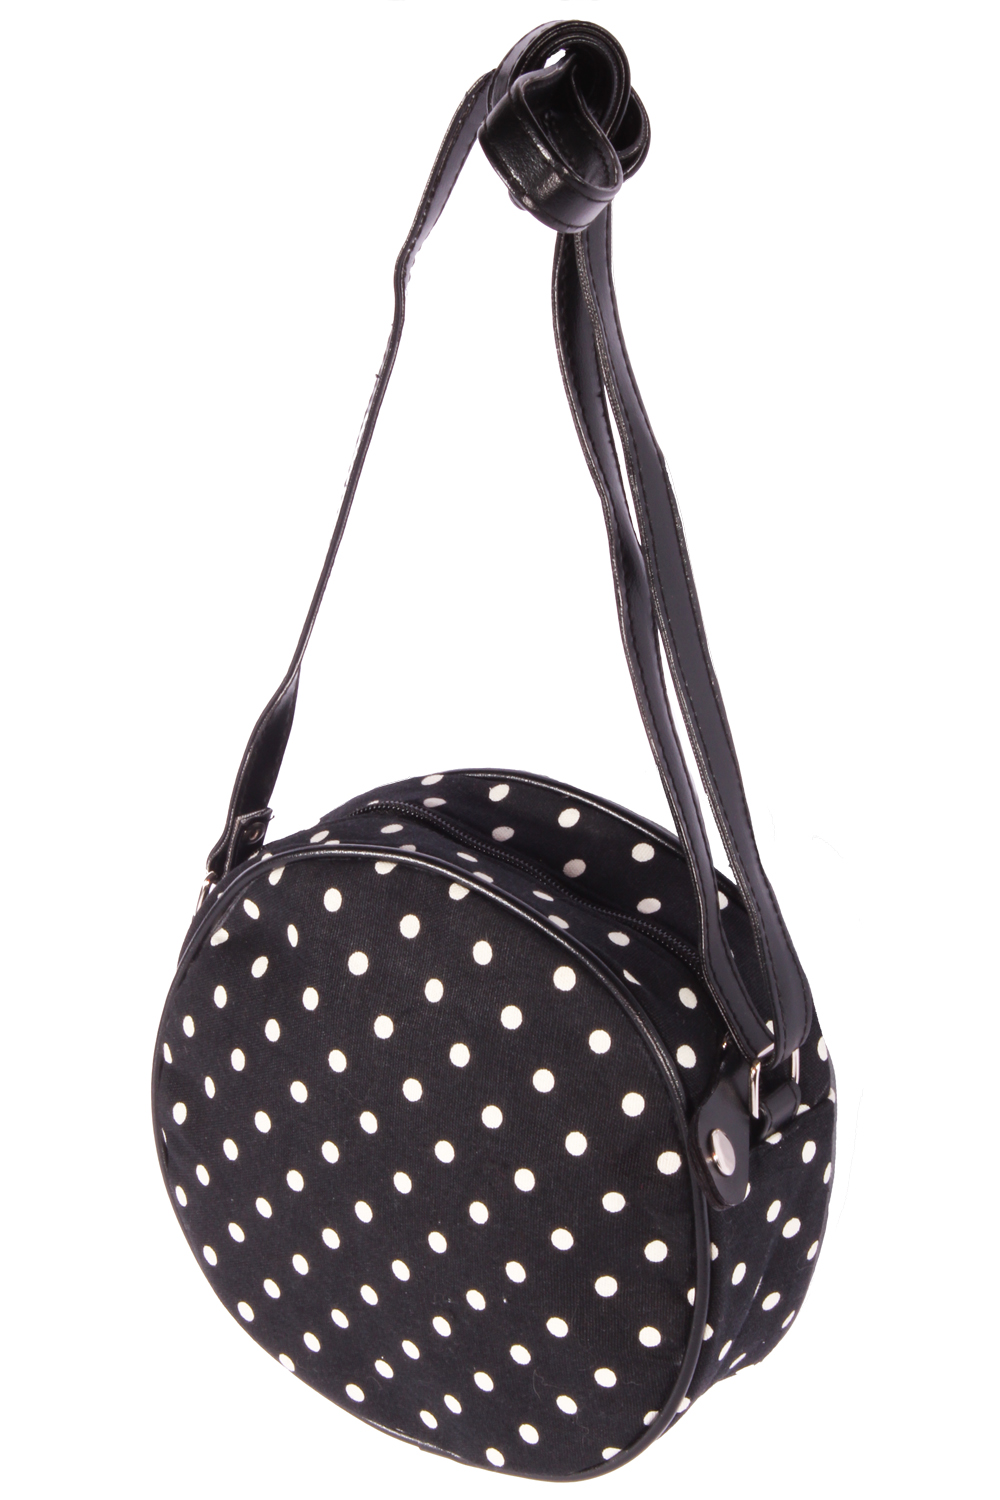 Polka Dots rockabilly Punkte Mini Purse Handtasche Round Bag Abendtasche